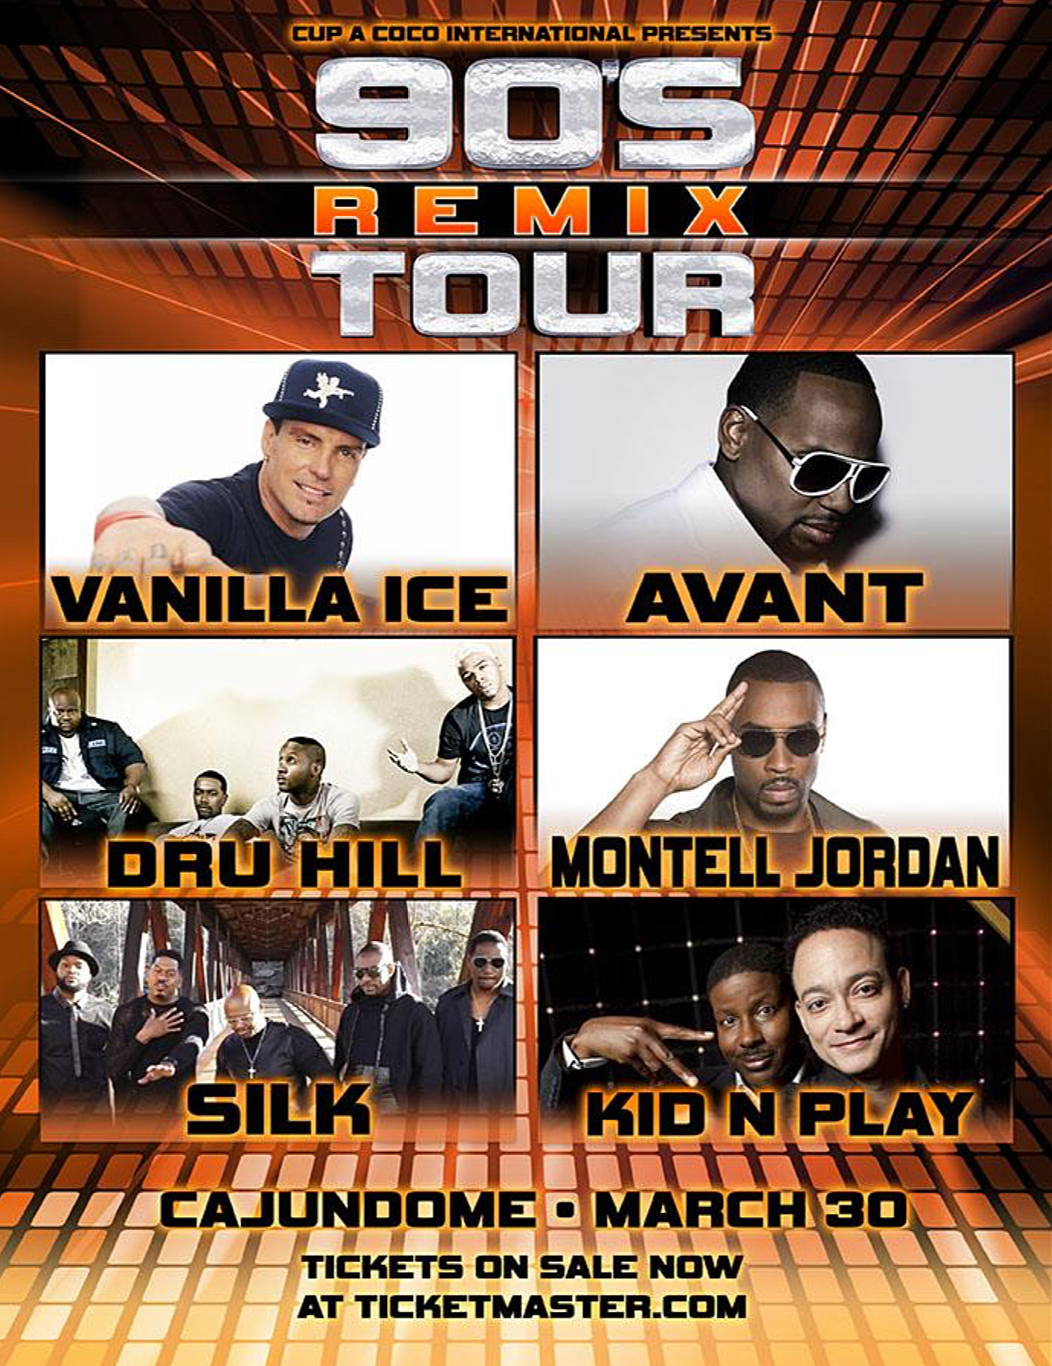 90's Remix Tour Coming To Lafayette CAJUNDOME